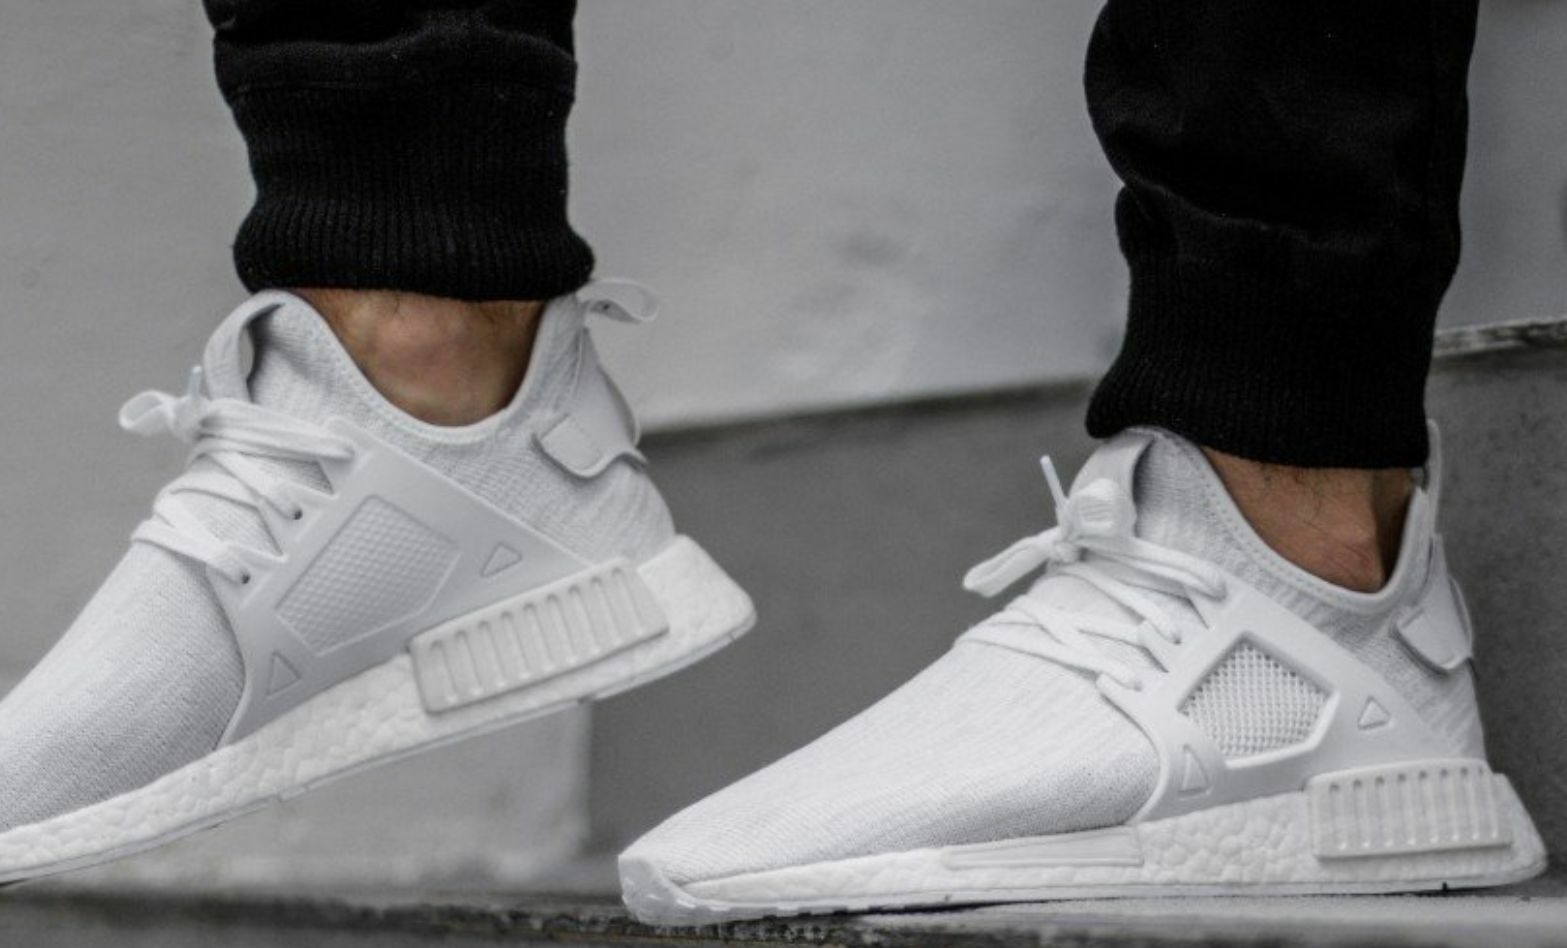 Adidas NMD_XR1Triple White White White EU release FootLocker Exclusive BY3052 AUTHENTIC 6685d4